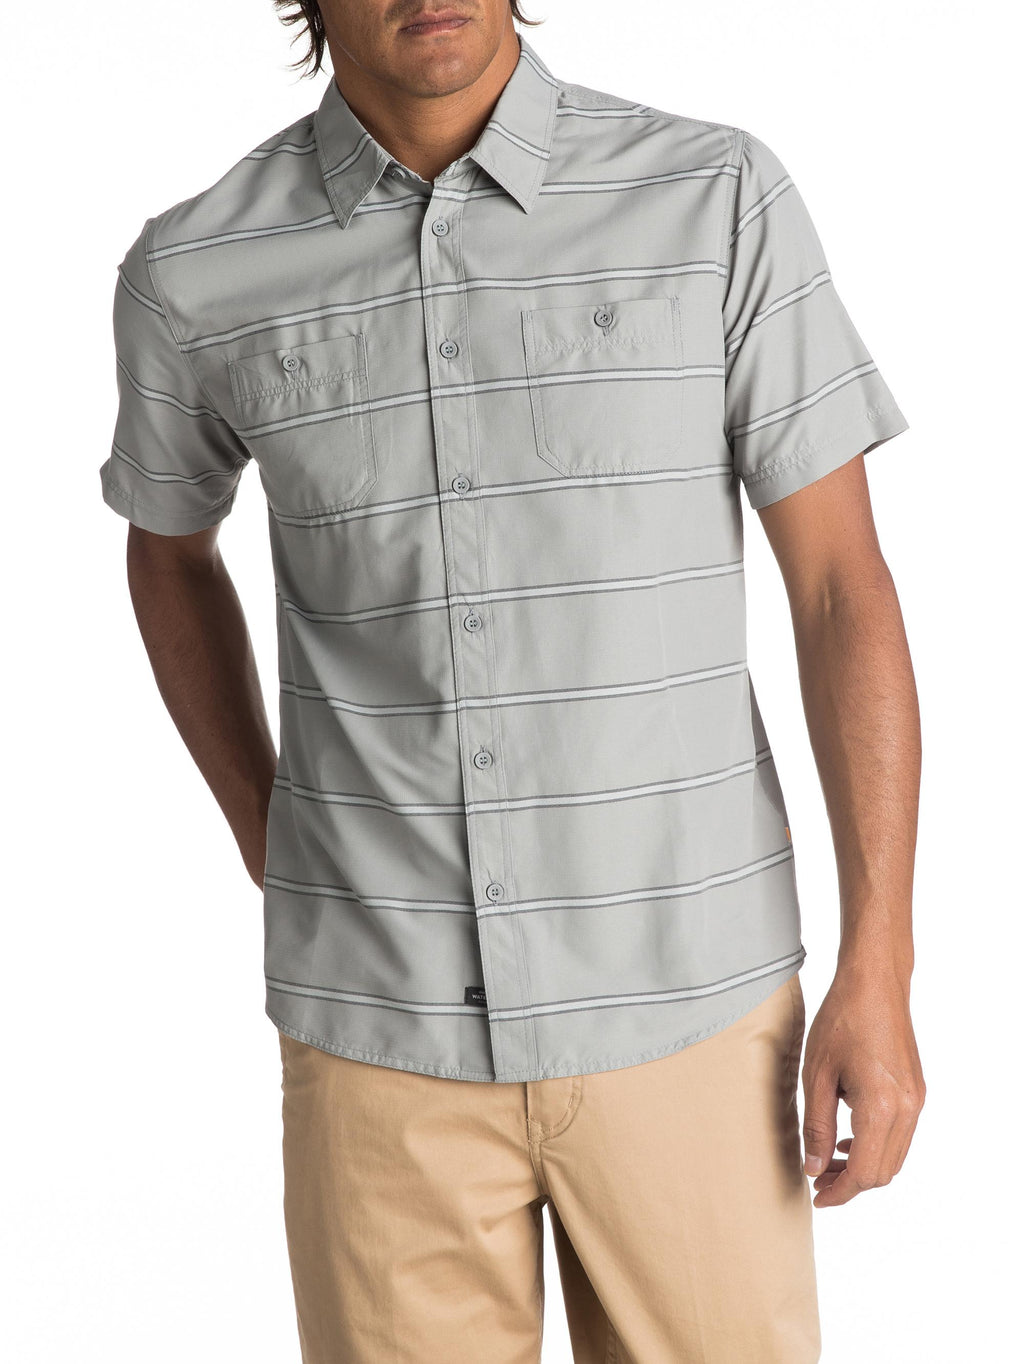 Quiksilver Waterman Wake Stripe Technical Short Sleeve Shirt - Men's